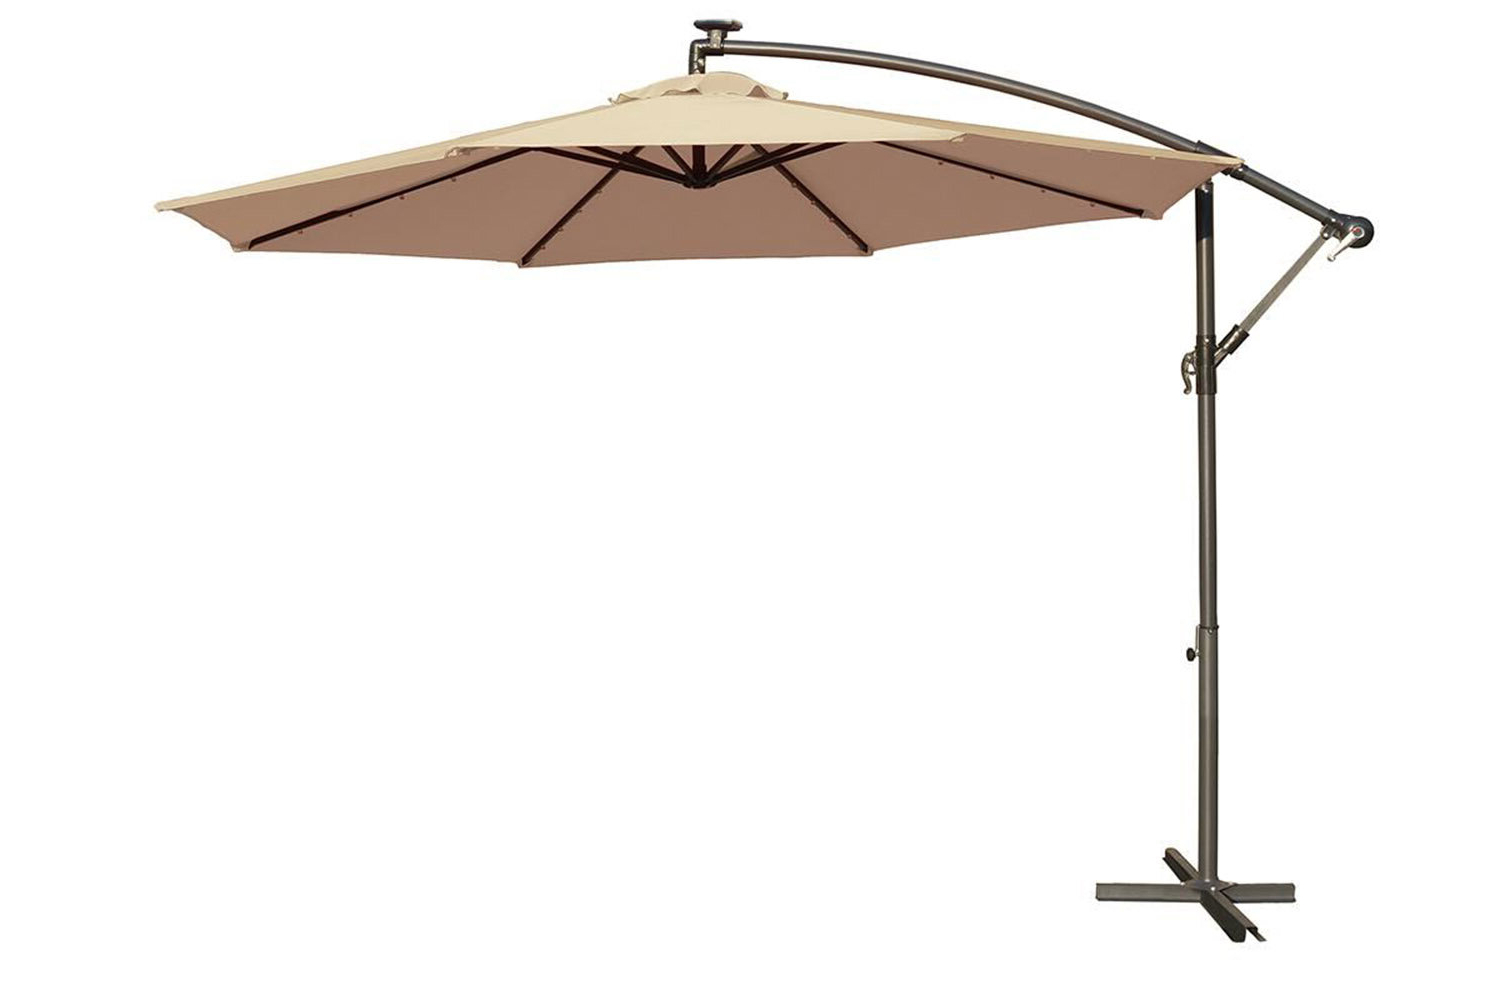 Newest Dunwich 10' Cantilever Umbrella Pertaining To Tallulah Sunshade Hanging Outdoor Cantilever Umbrellas (View 4 of 20)